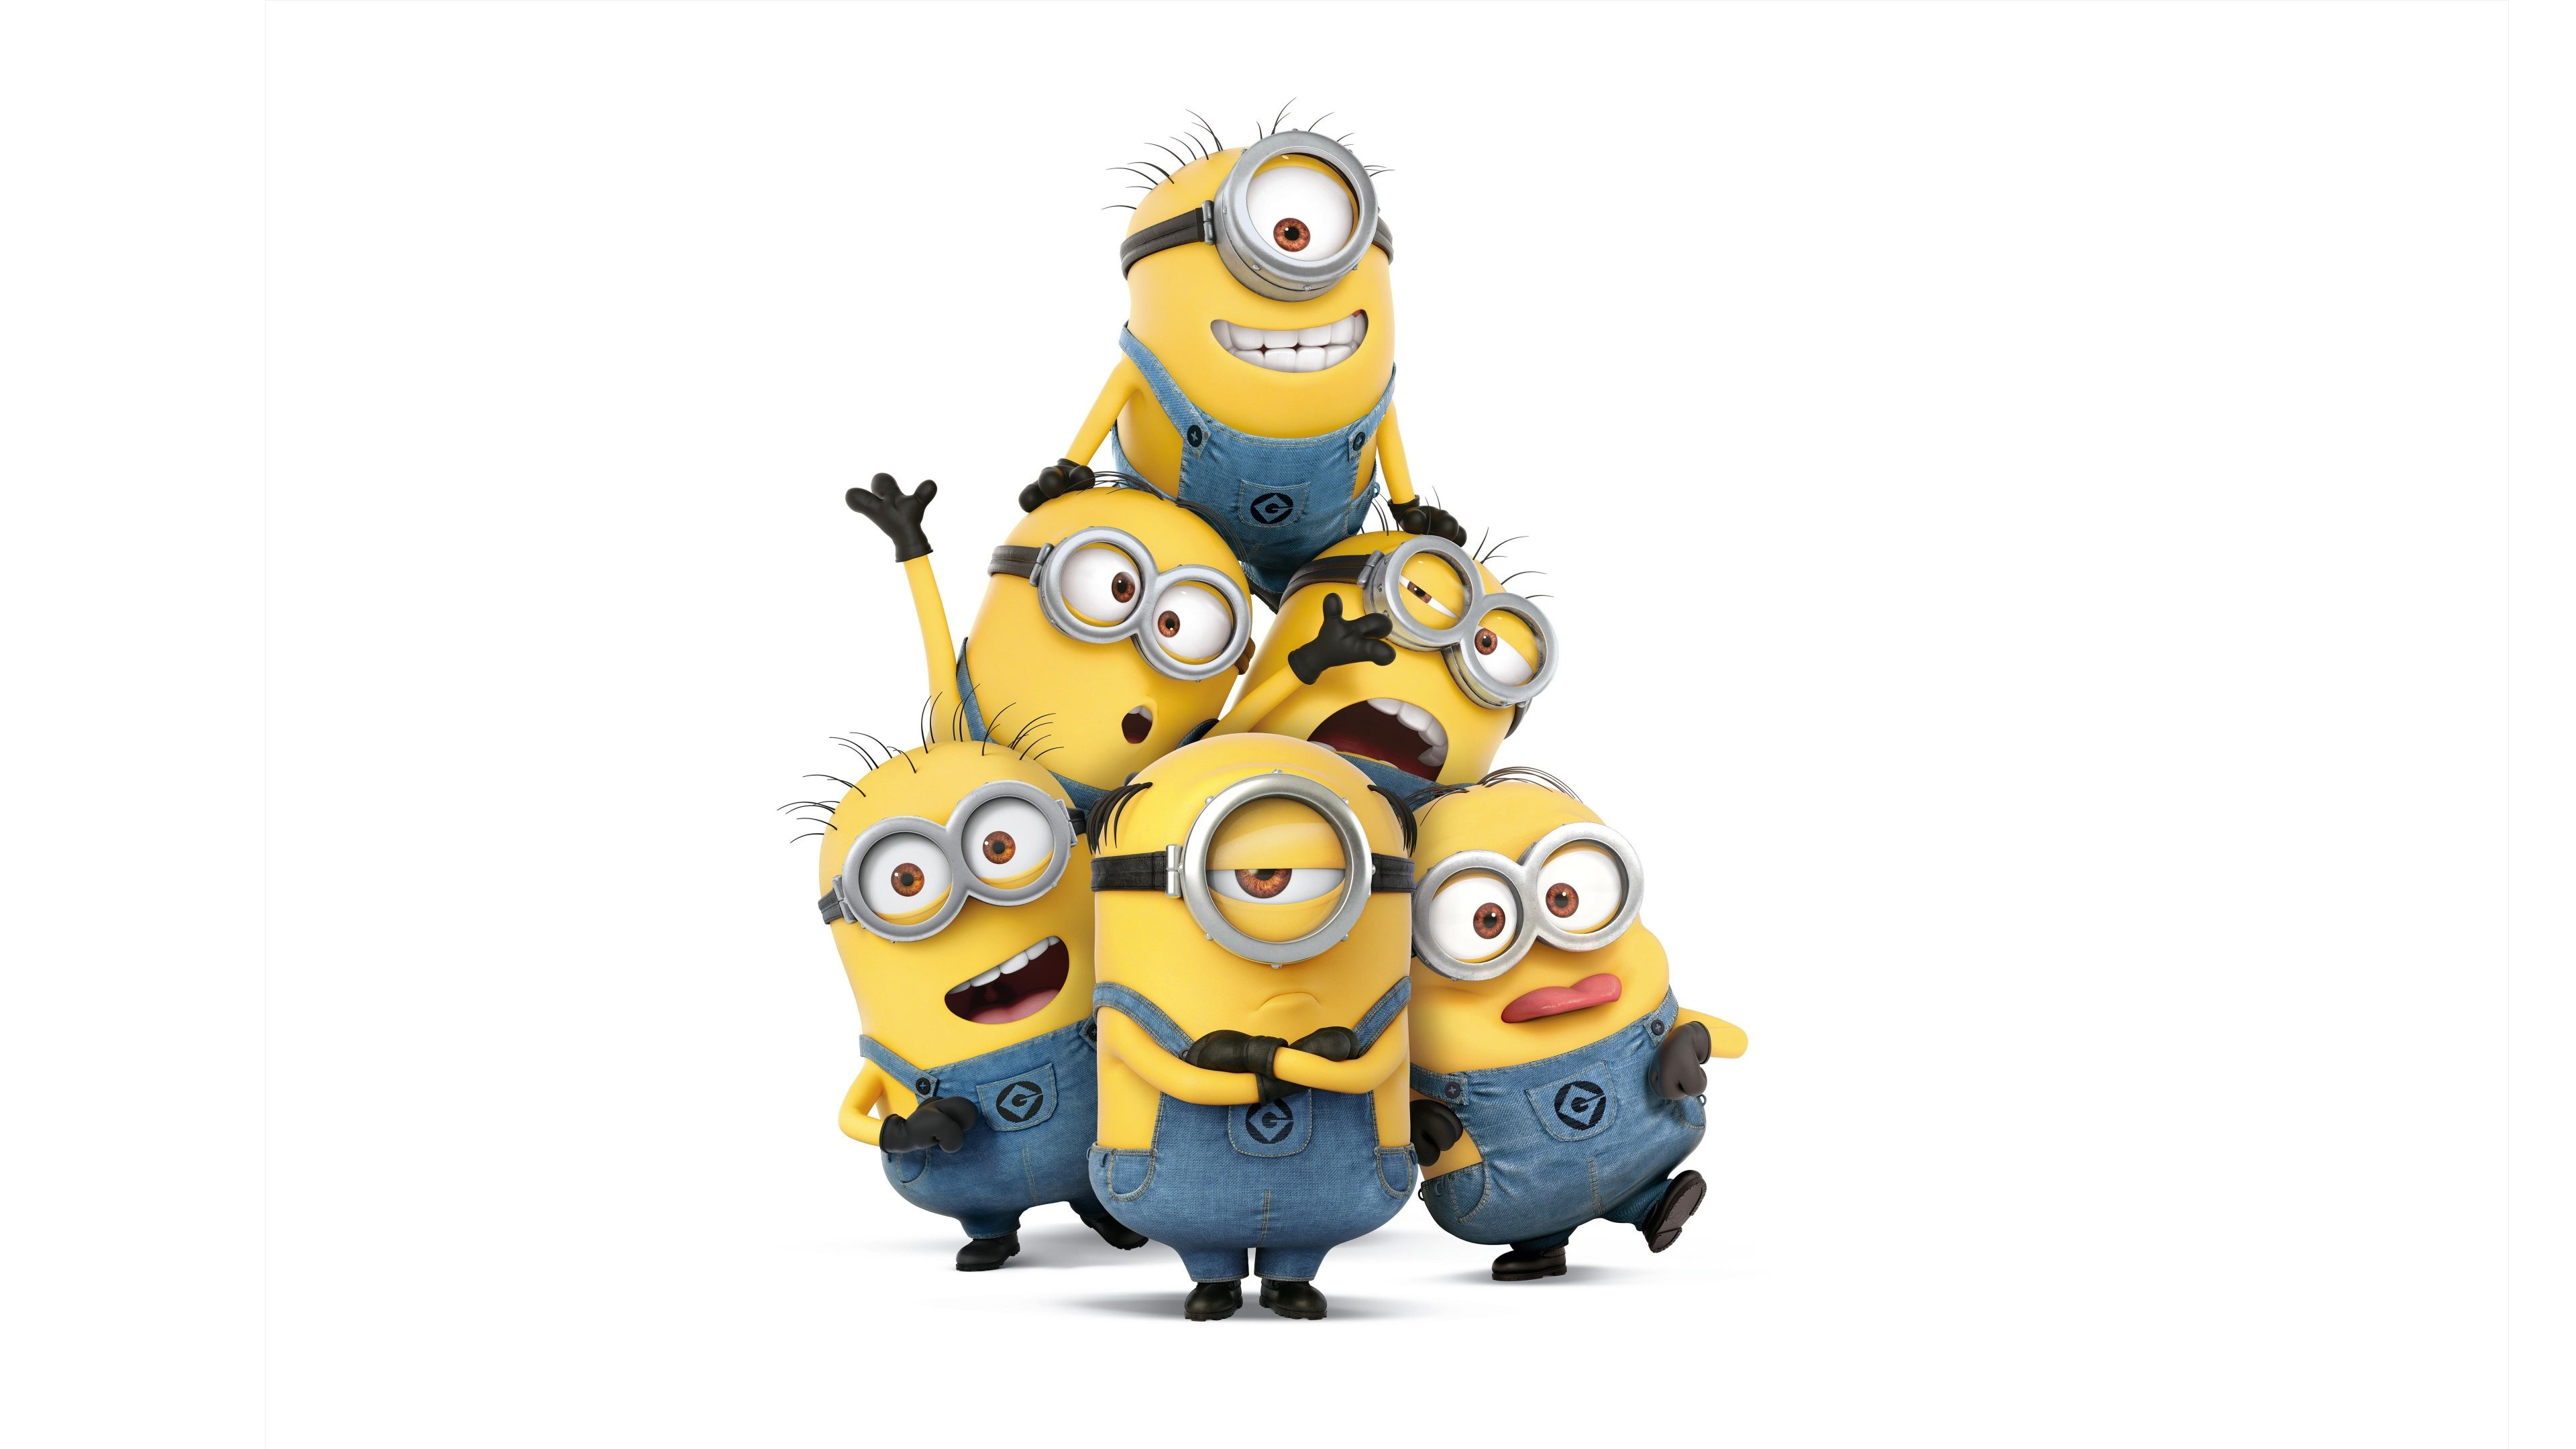 3840x2160 minions 4k wallpaper pc background